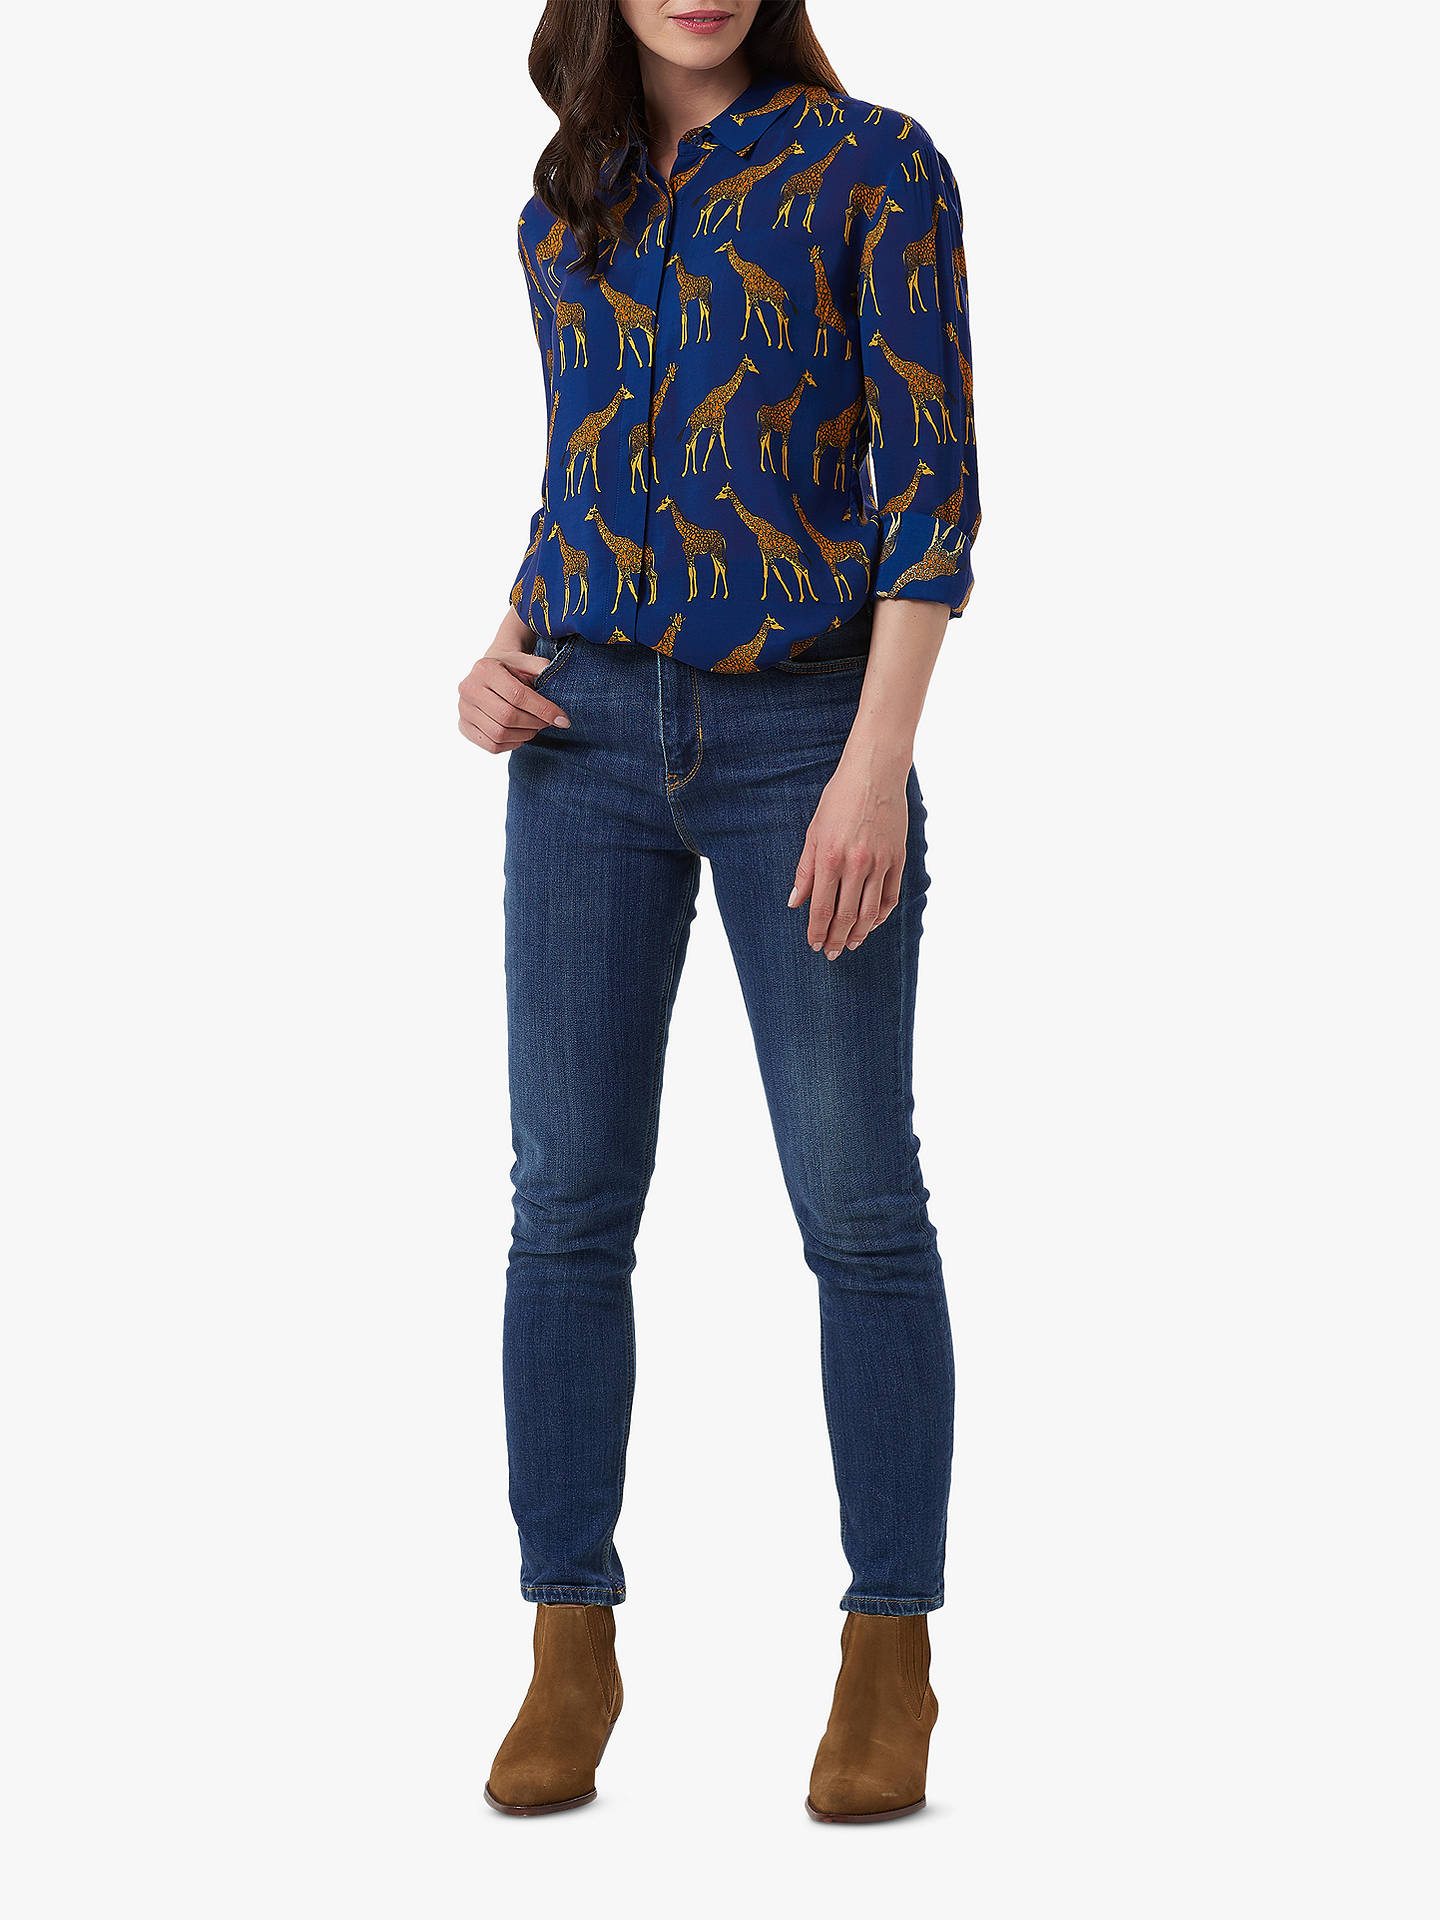 Buy Sugarhill Brighton Joy Giraffe Print Shirt, Navy, 8 Online at johnlewis.com